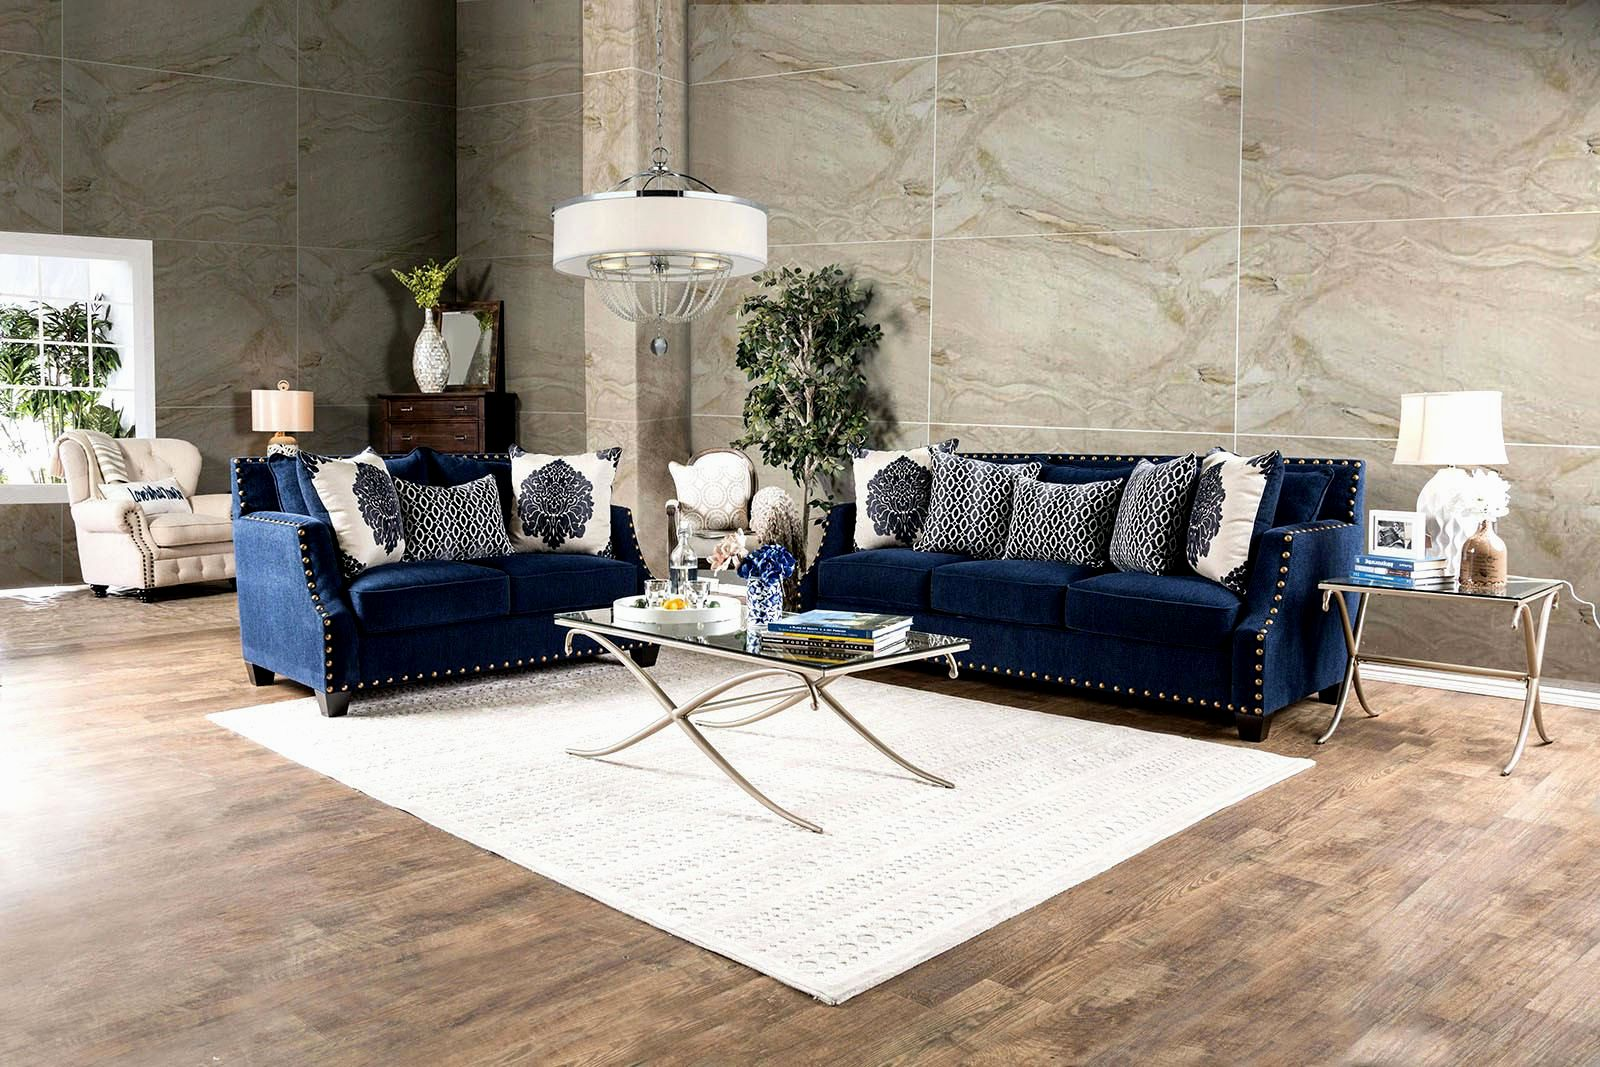 stunning navy velvet sofa image-Cute Navy Velvet sofa Layout